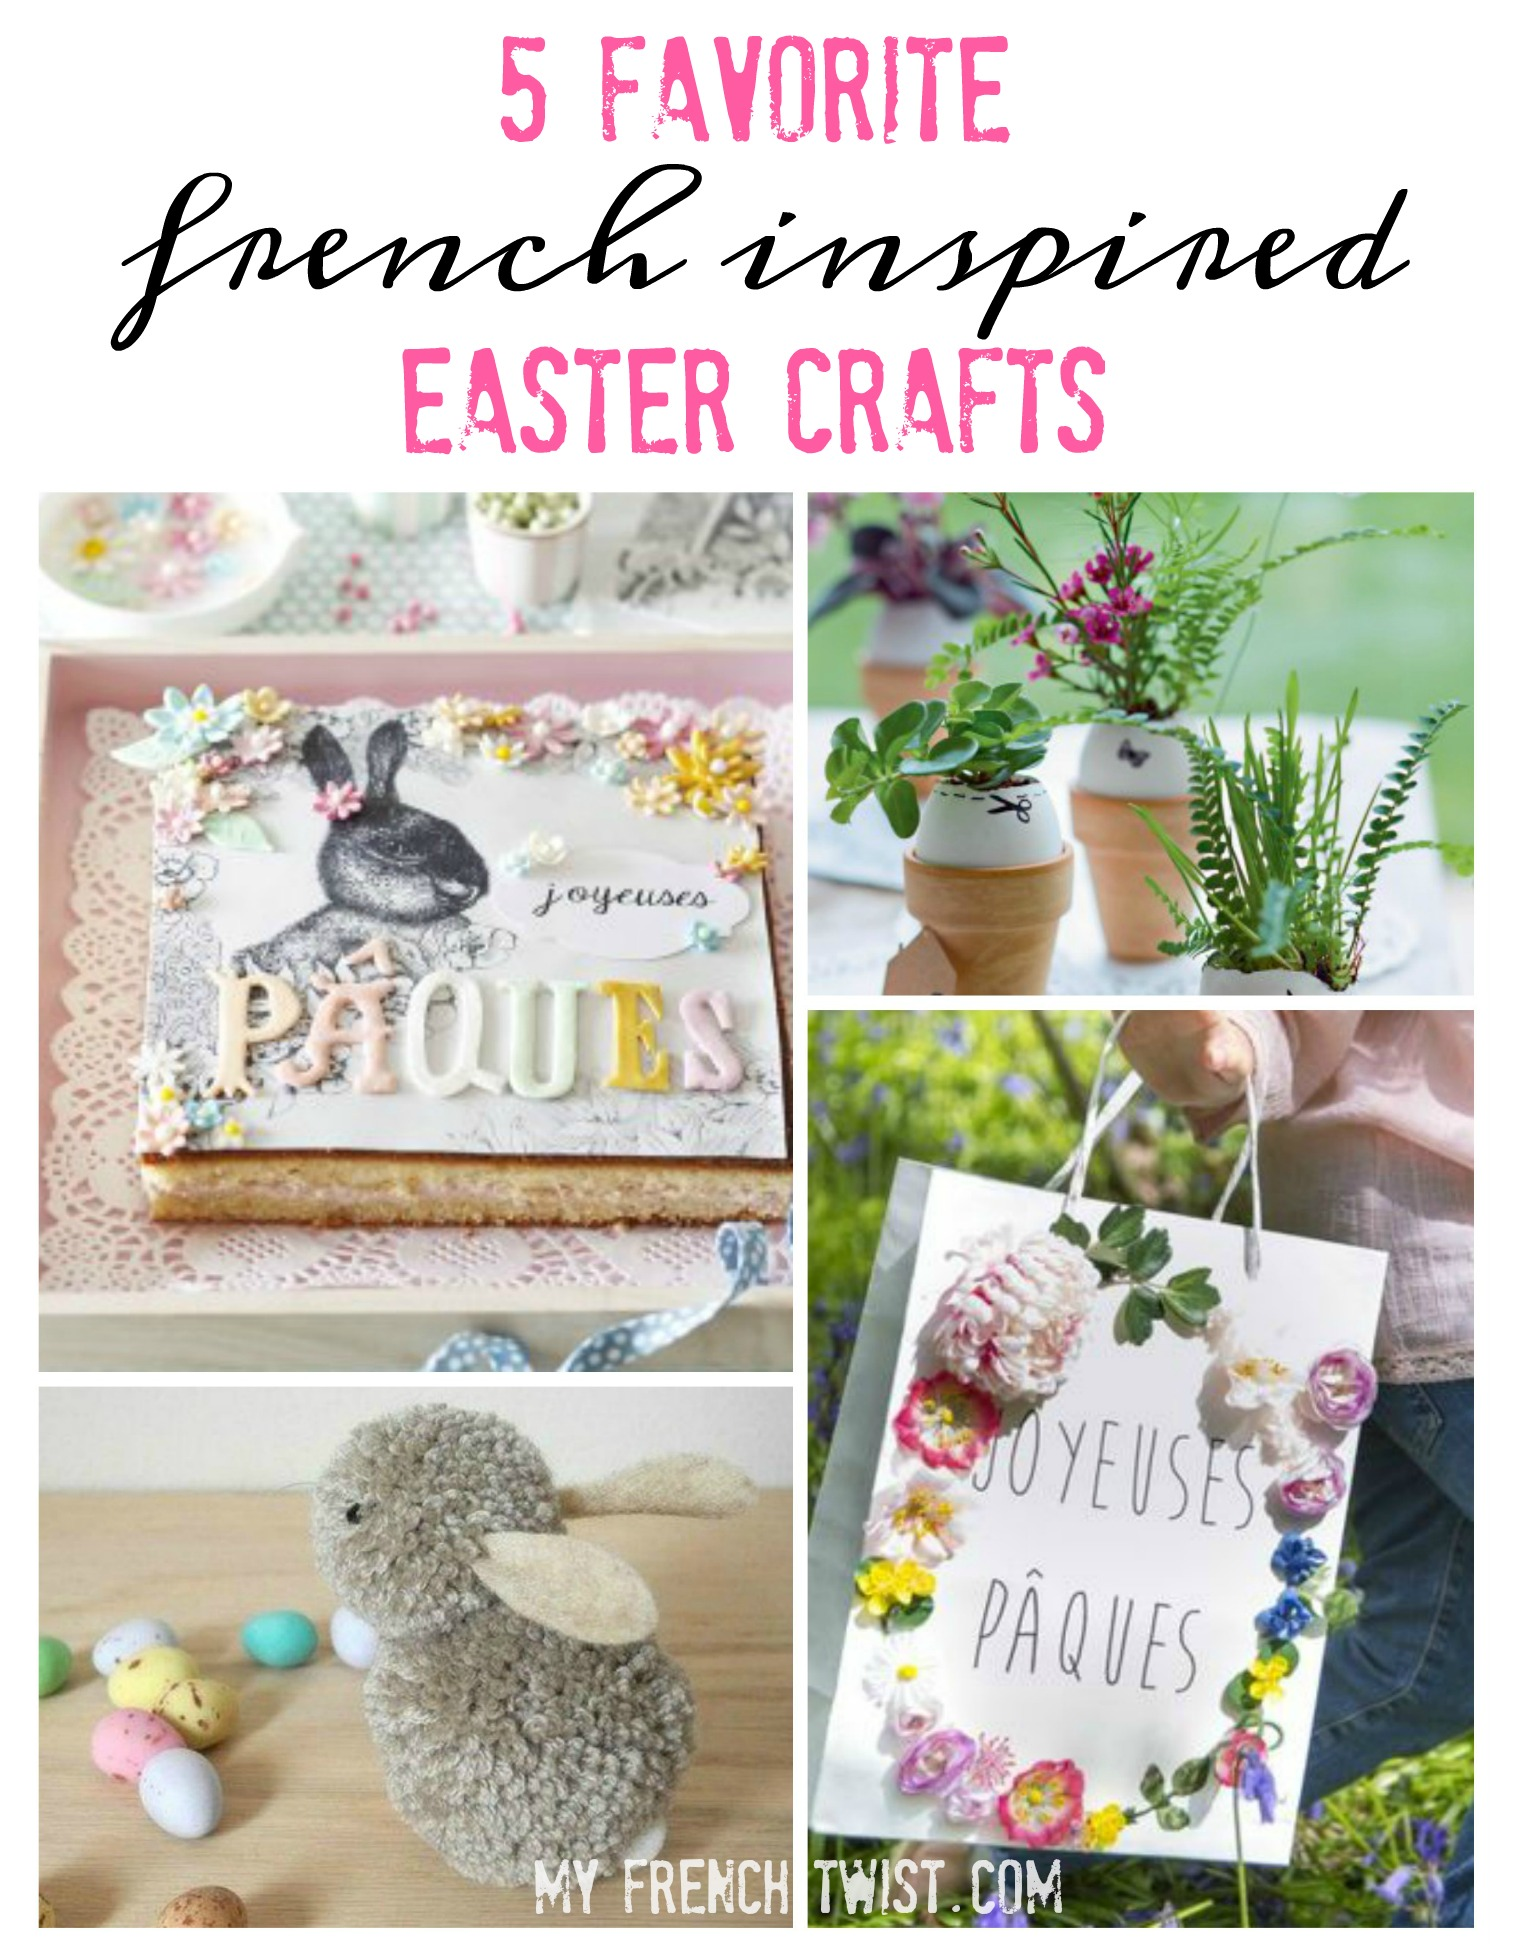 5 Favorite French Inspired Easter Crafts